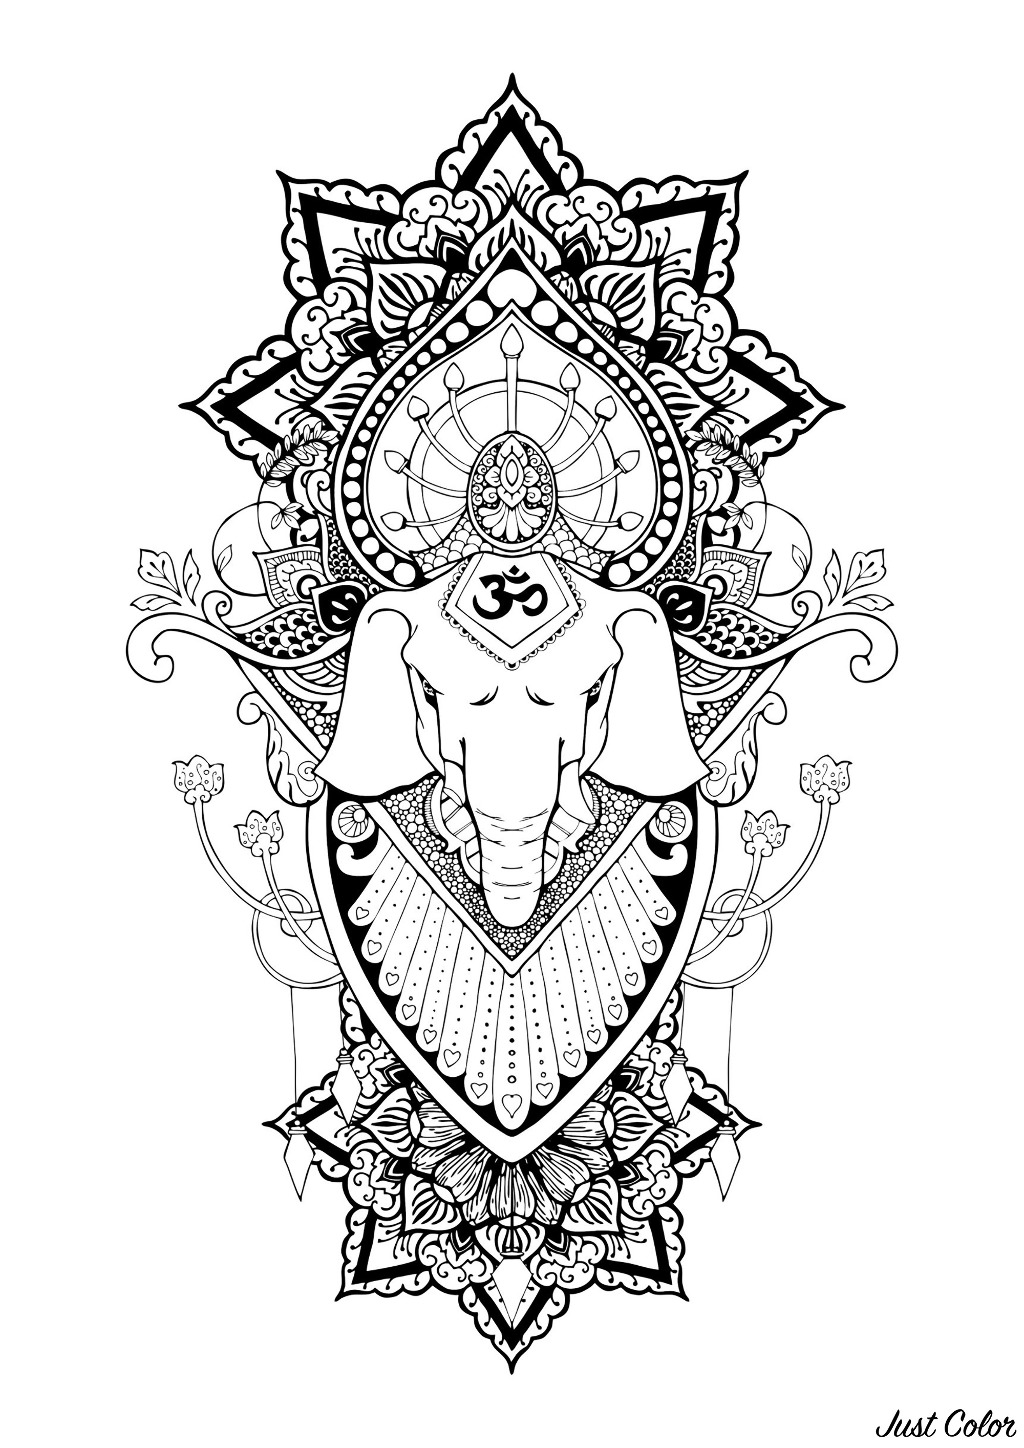 Ganesha is one of the best-known and most worshipped deities in the Hindu pantheon.  In this coloring page, only his head is represented, with beautiful mandalas and elegant patterns